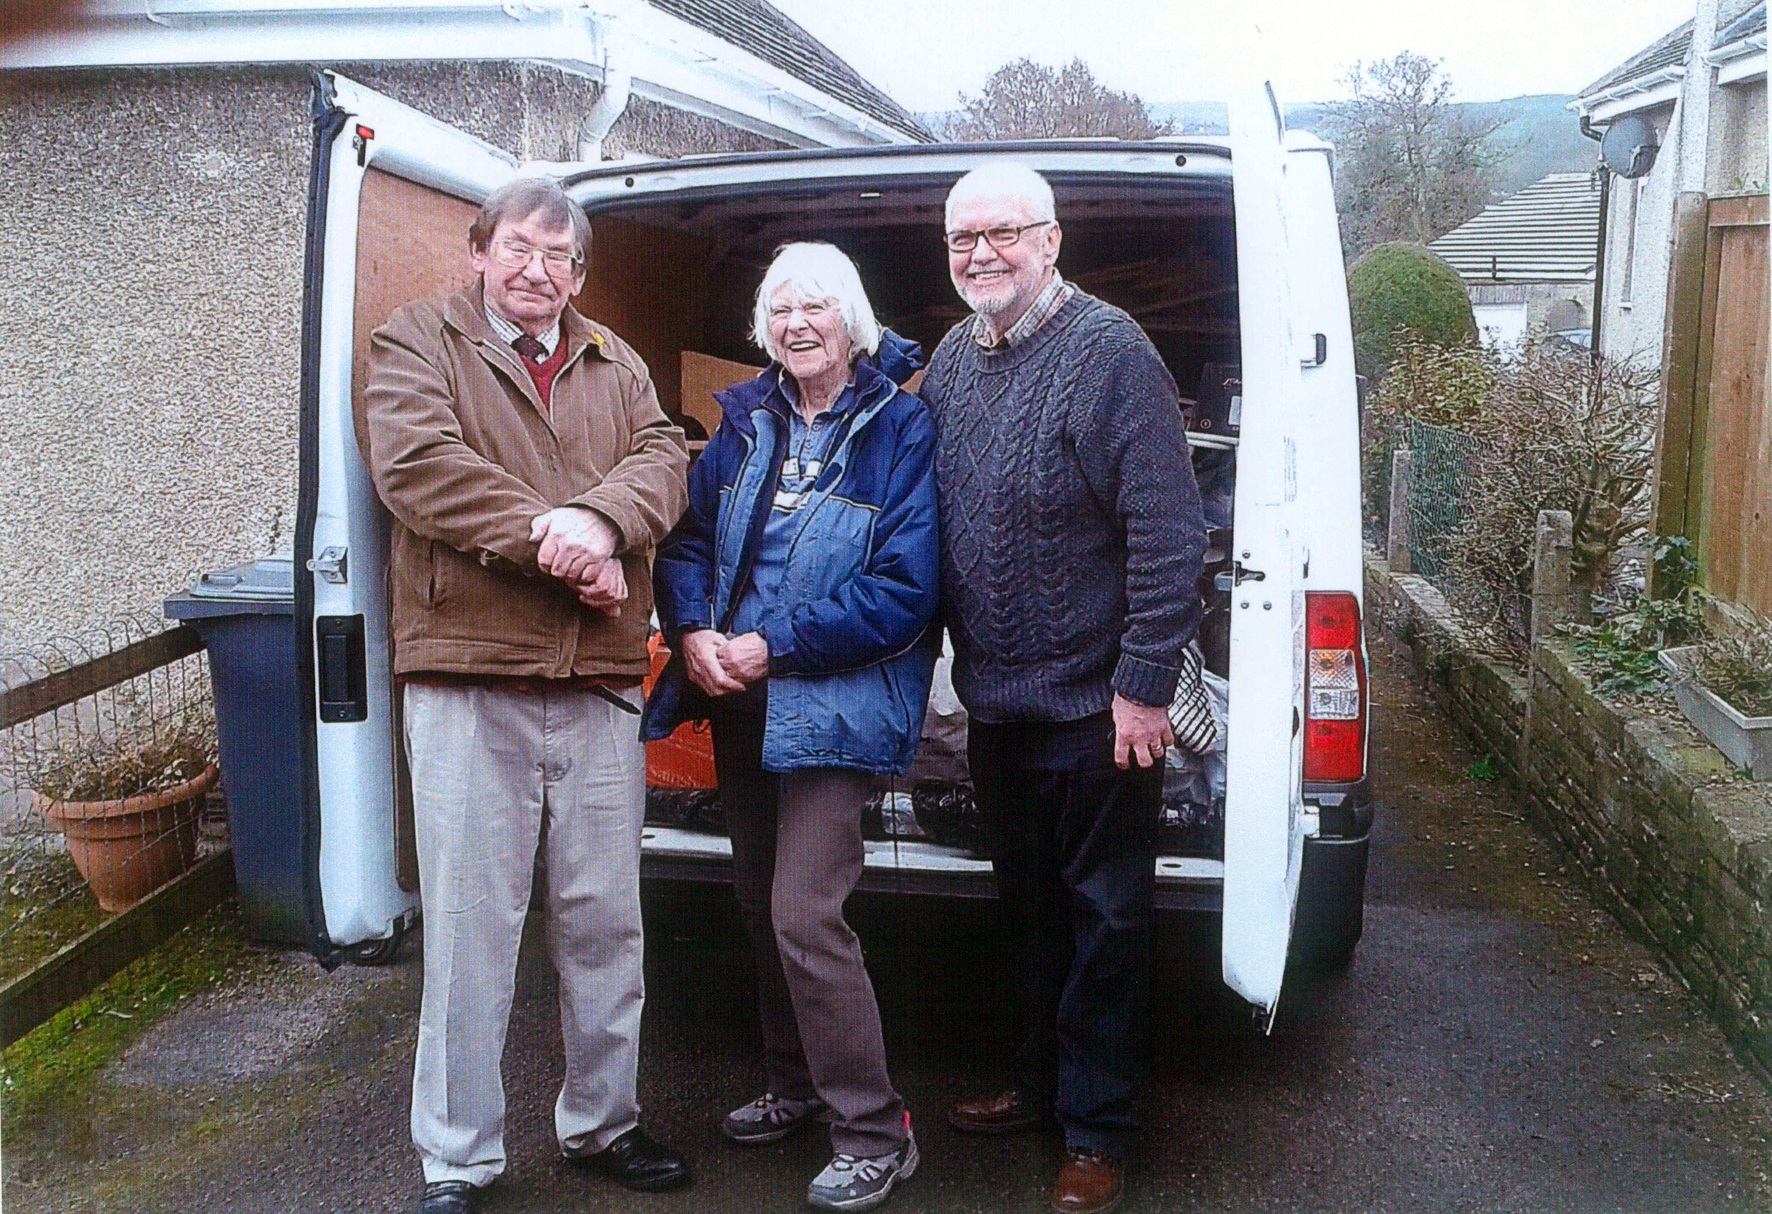 Sheila McLachlan with her drivers from Addingham, who will be taking a van full of   practical essentials to help    the victims of flooding which devastated parts of the south of England earlier in the year